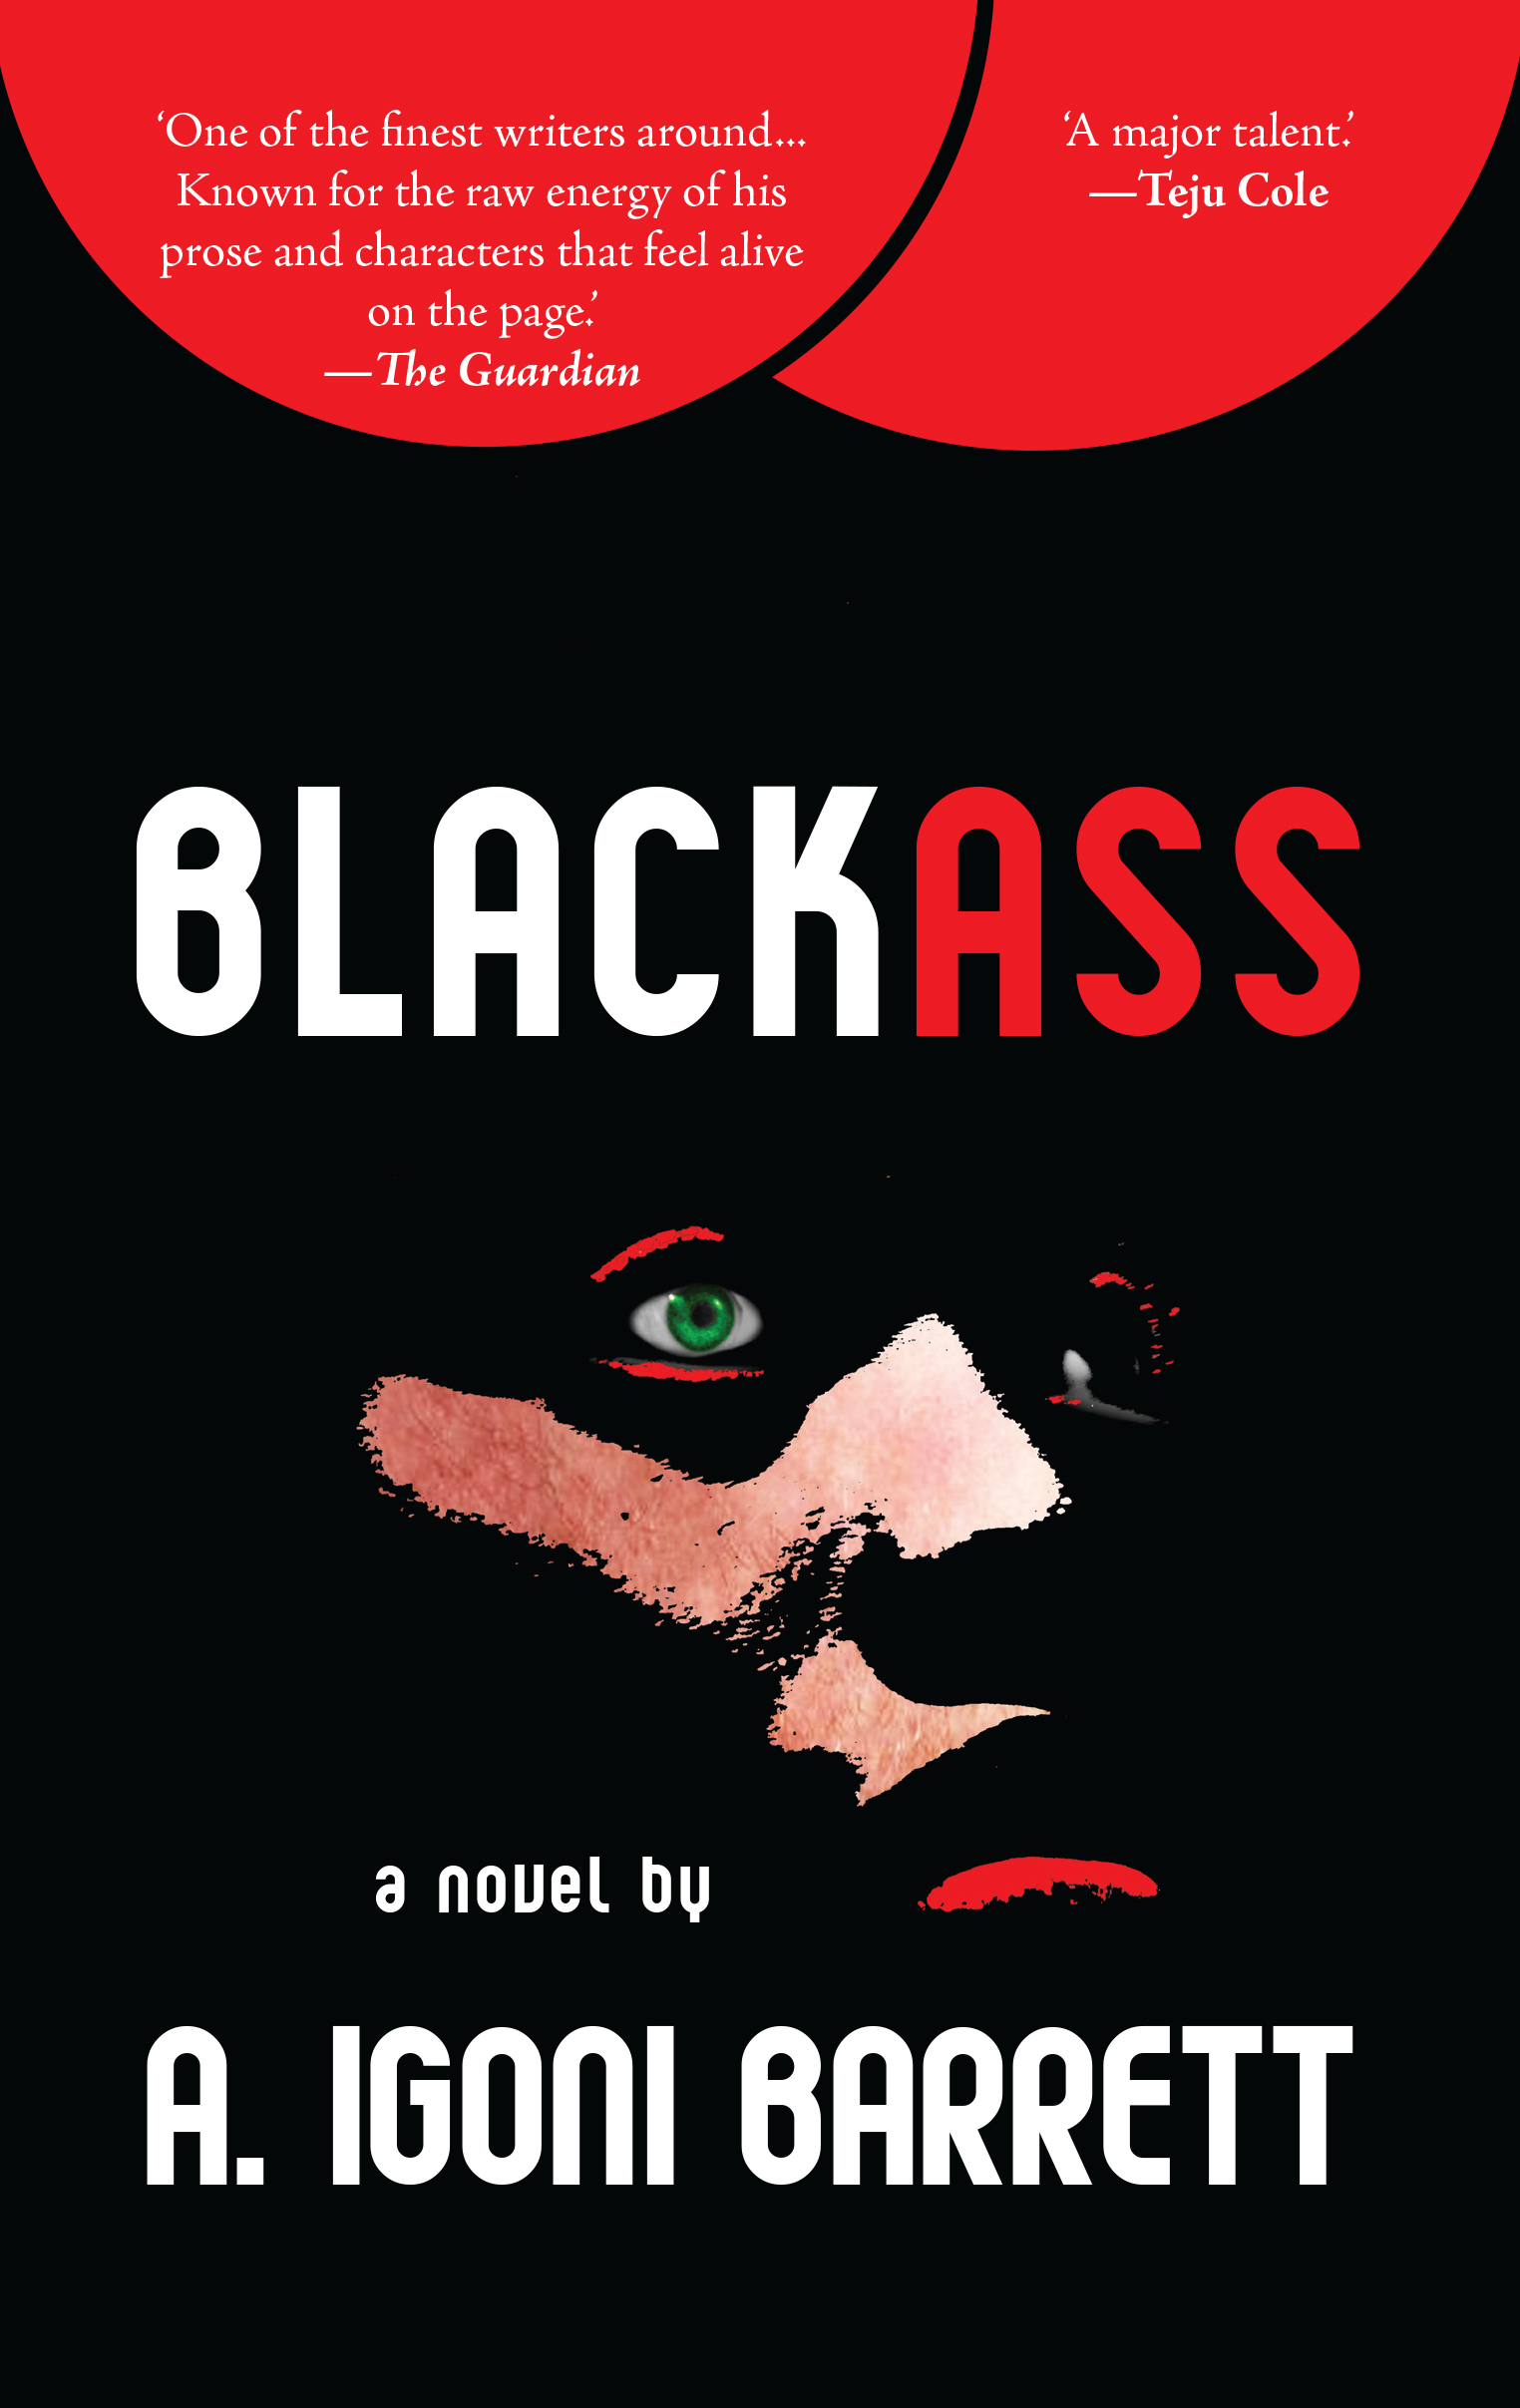 Blackass   -  A. Igoni Barrett